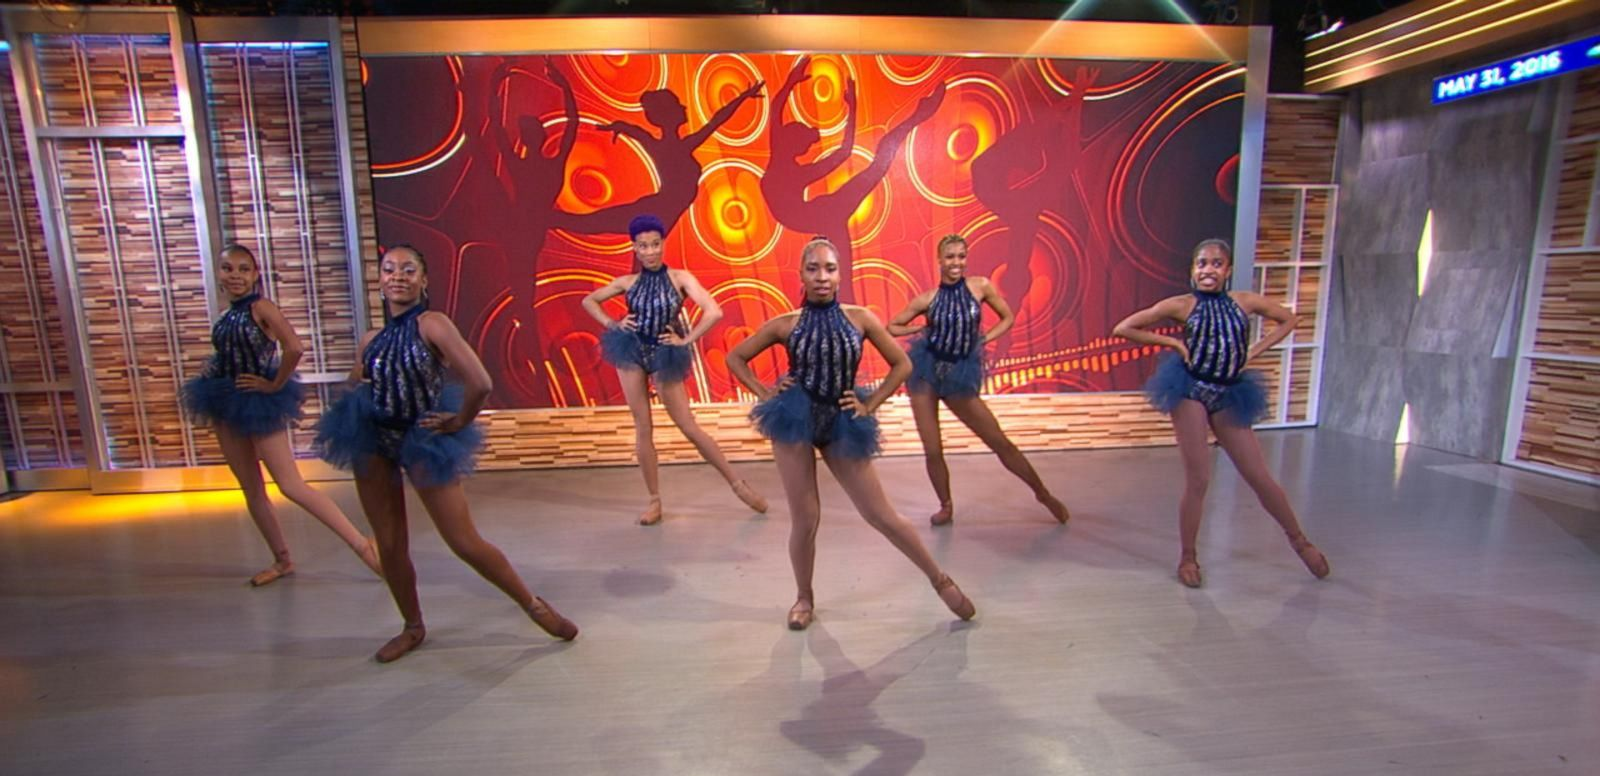 VIDEO: Hip Hop Ballet: Ballerinas Take on Jason Derulo Routine